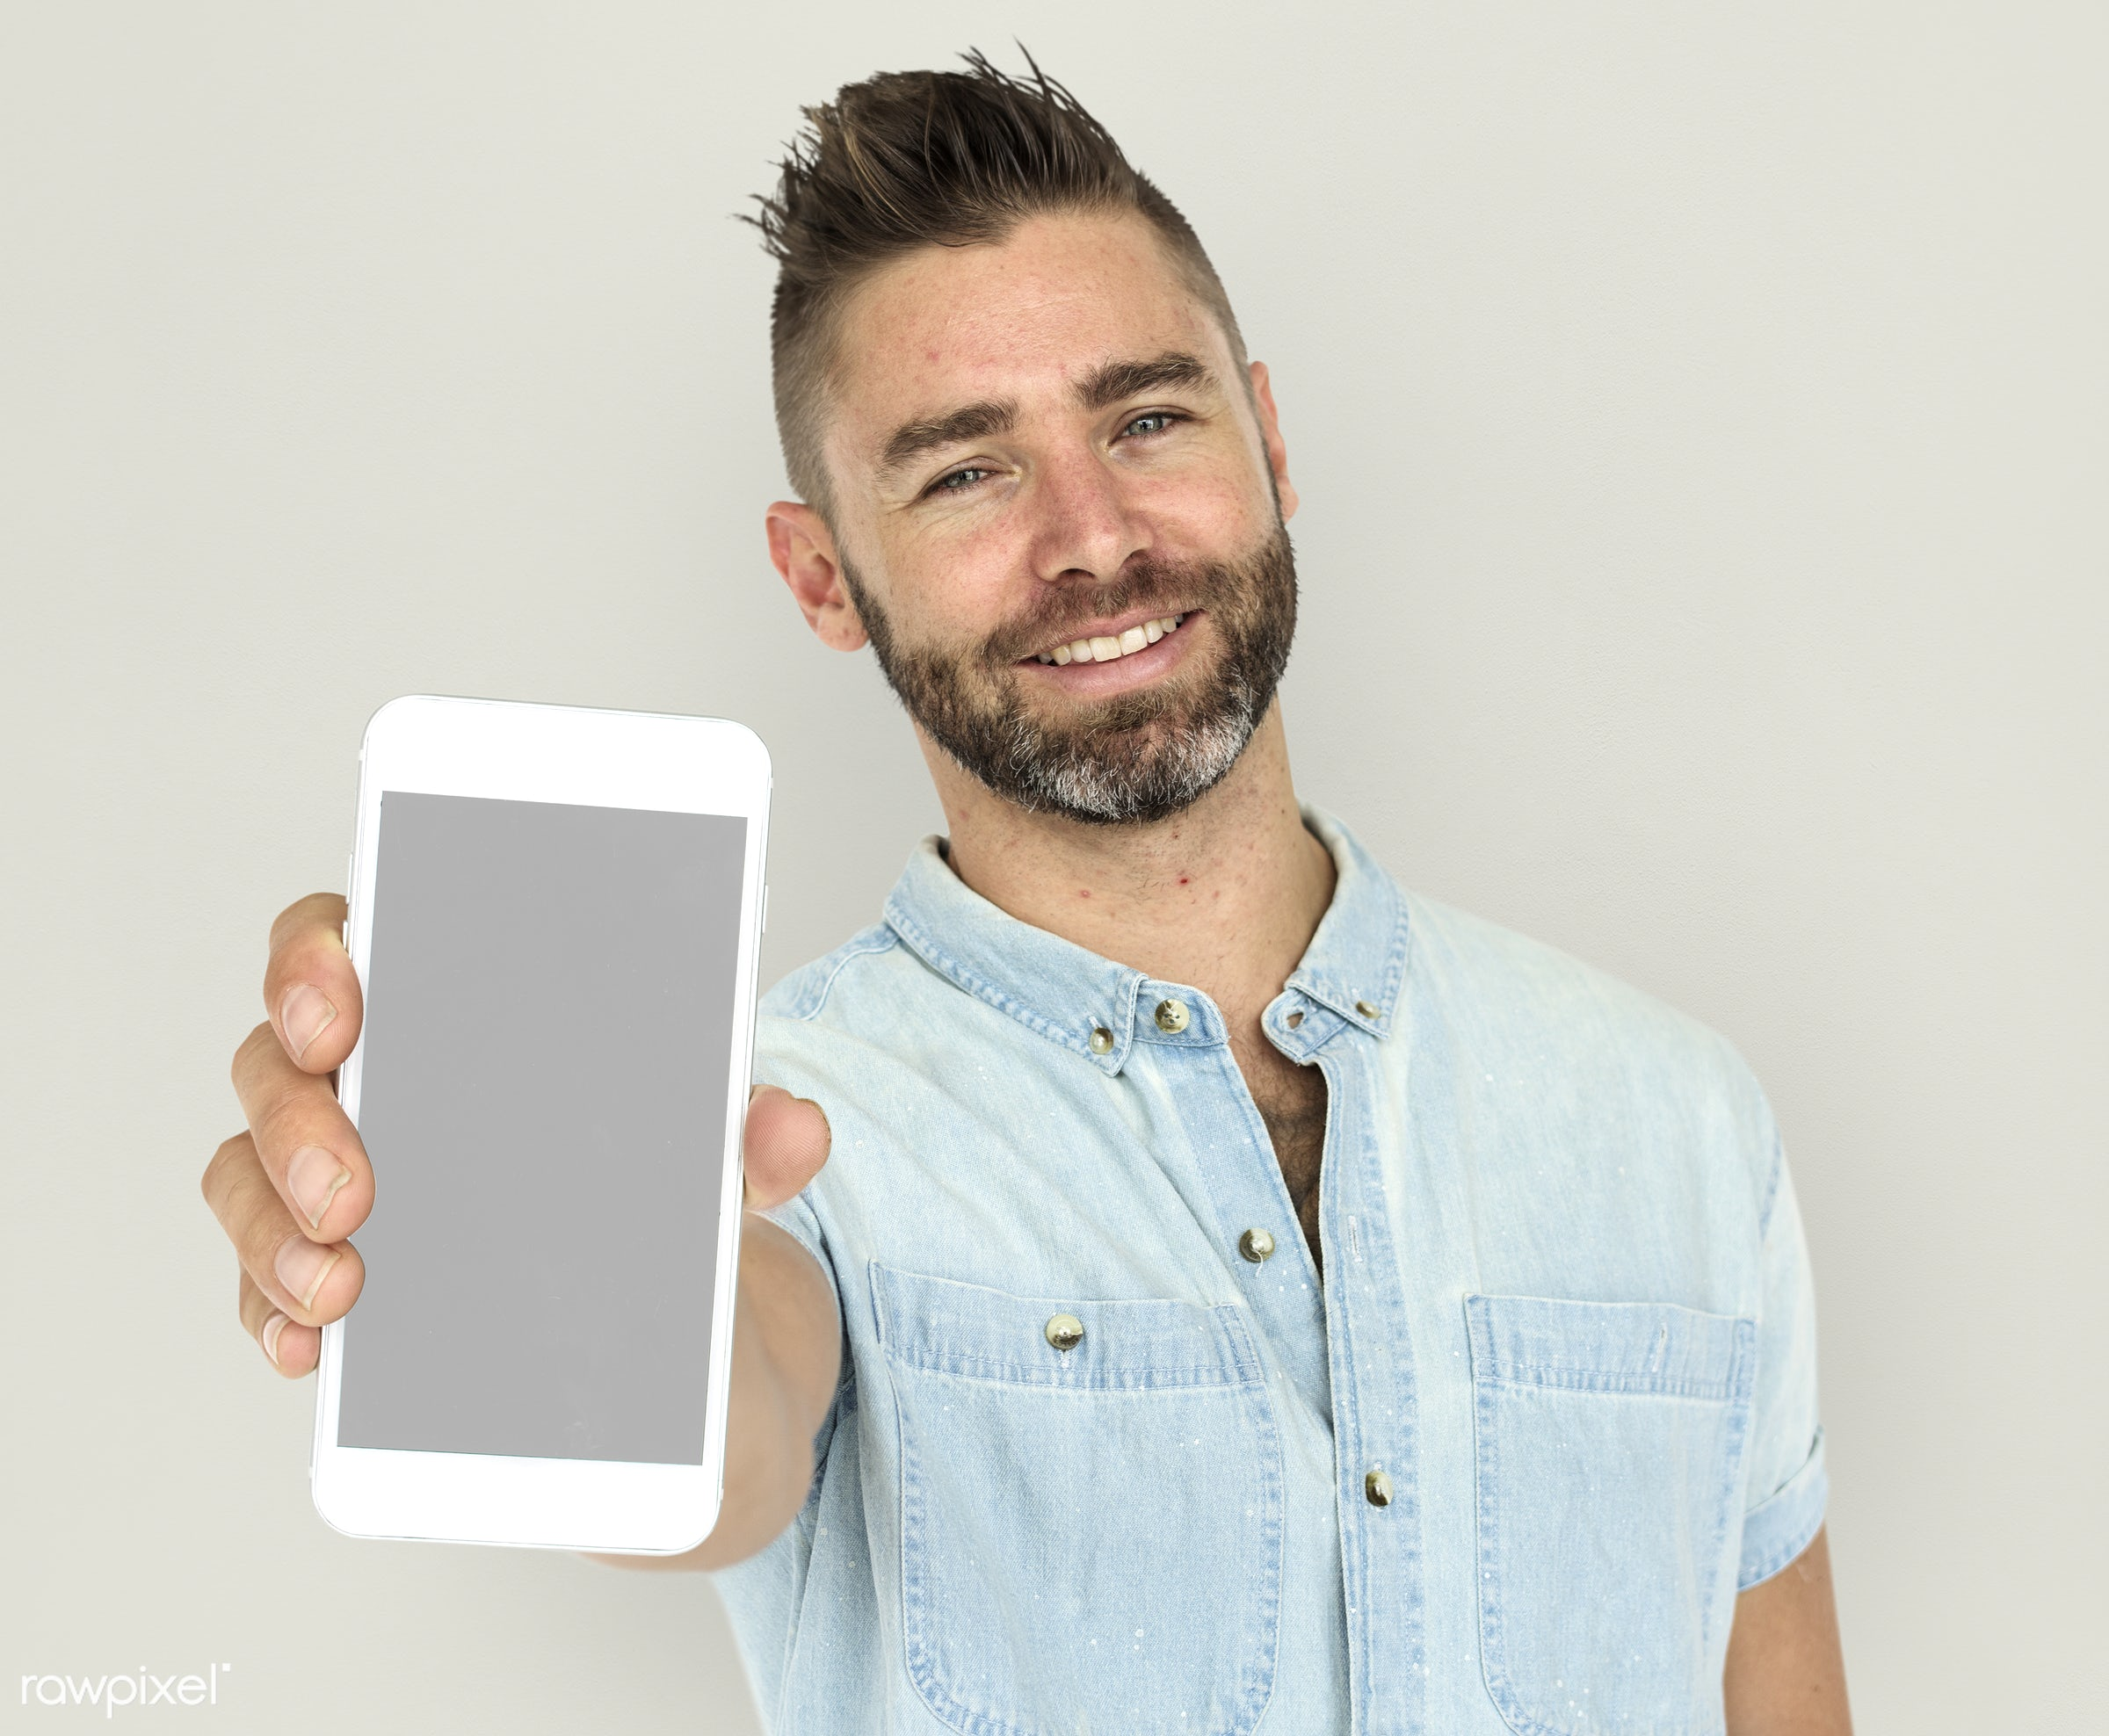 background, beard, caucasian, communication, device, emotion, expression, holding, holding phone, isolated, male, man,...